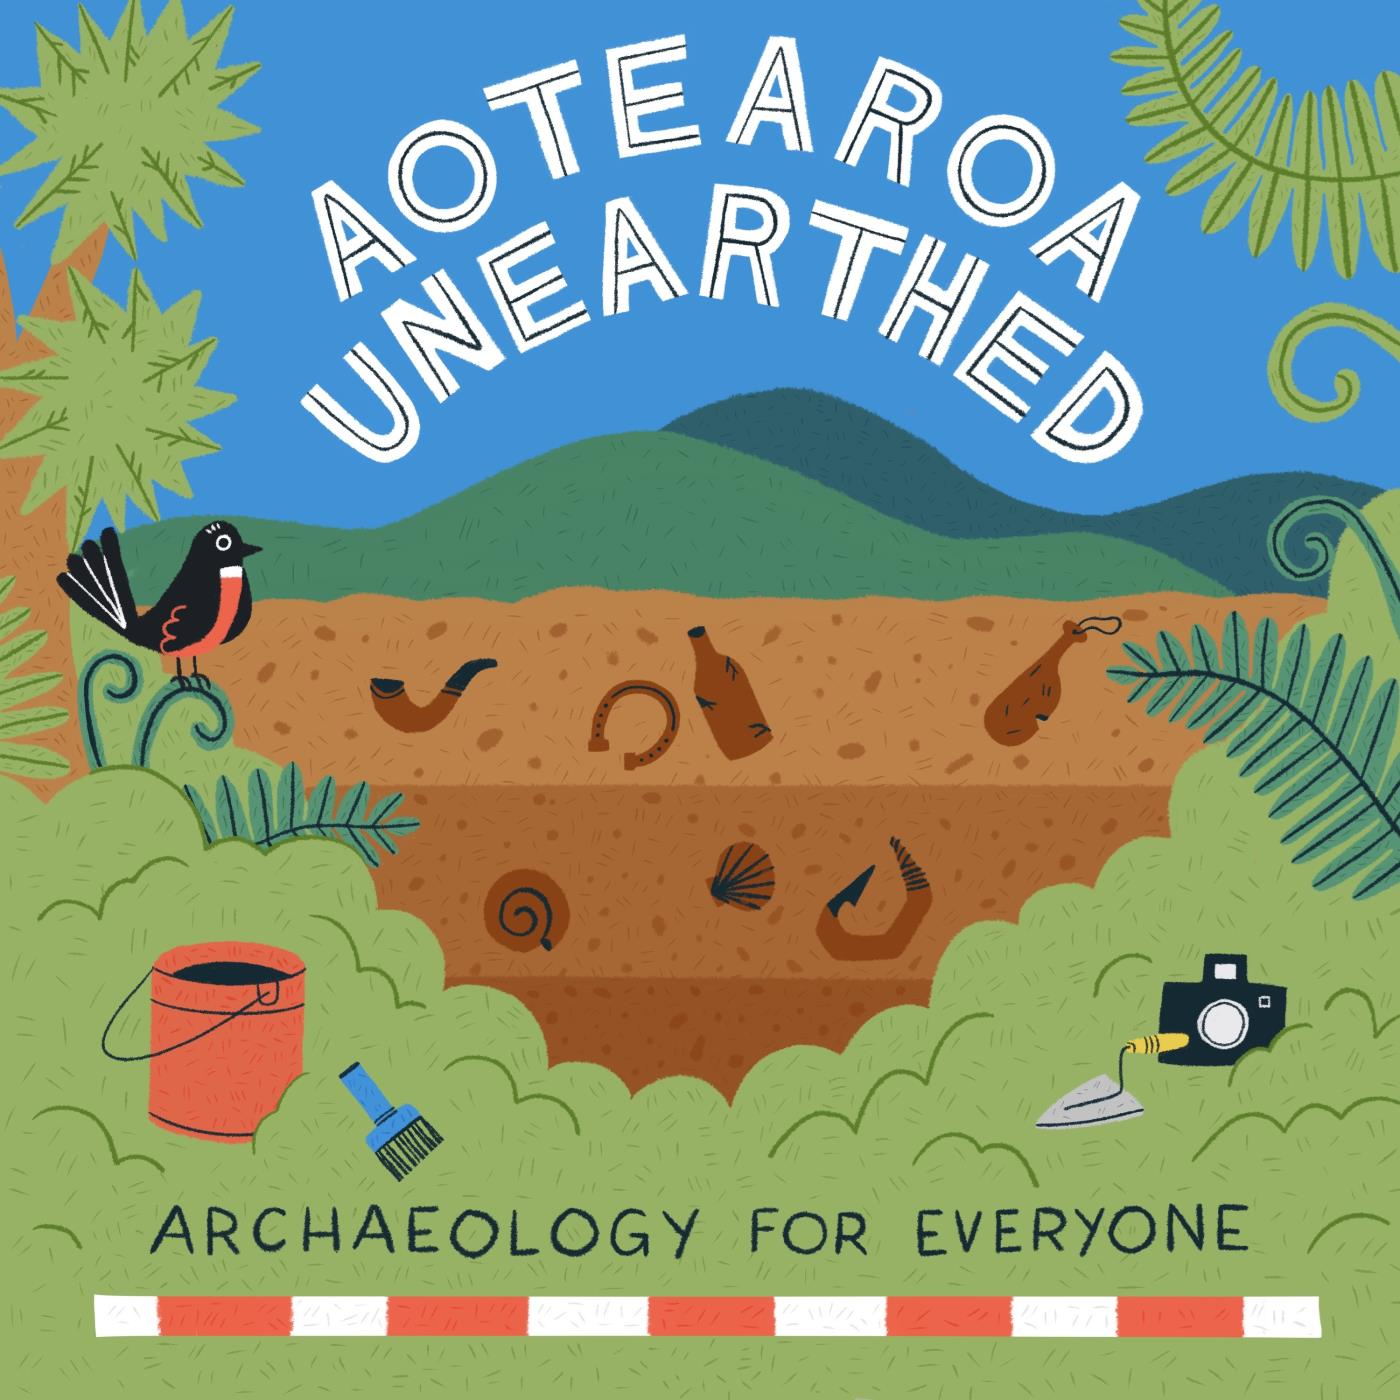 Aotearoa Unearthed